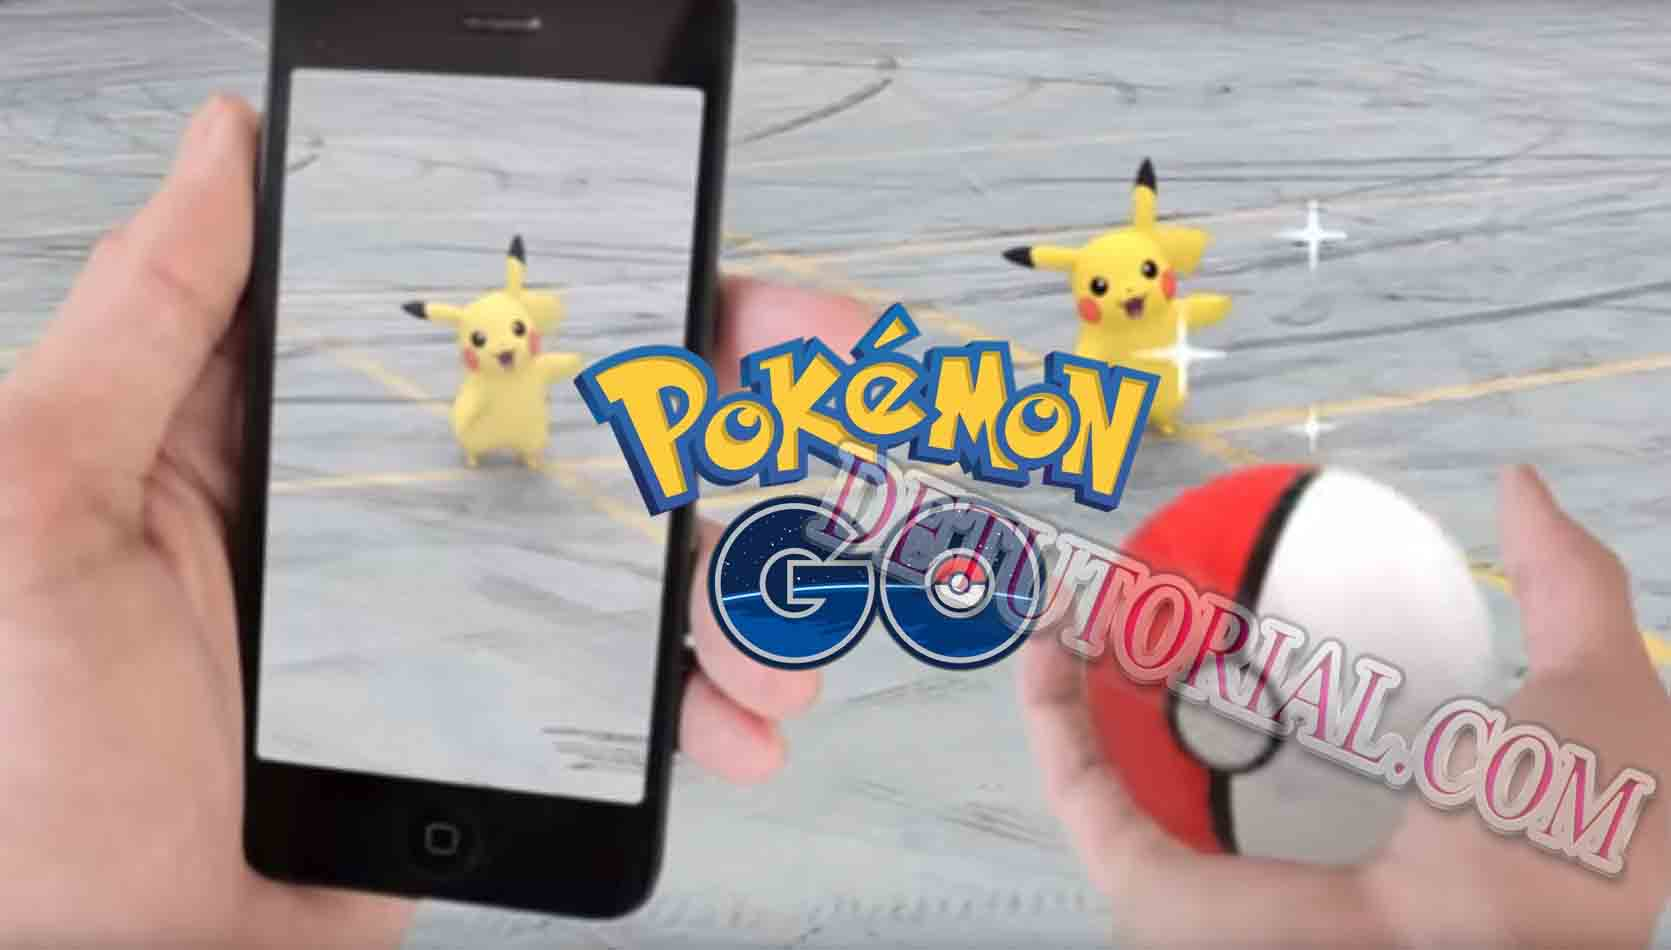 Pokemon Go, Cara Install Main Pokemon Go di Hp Intel Asus Zefone